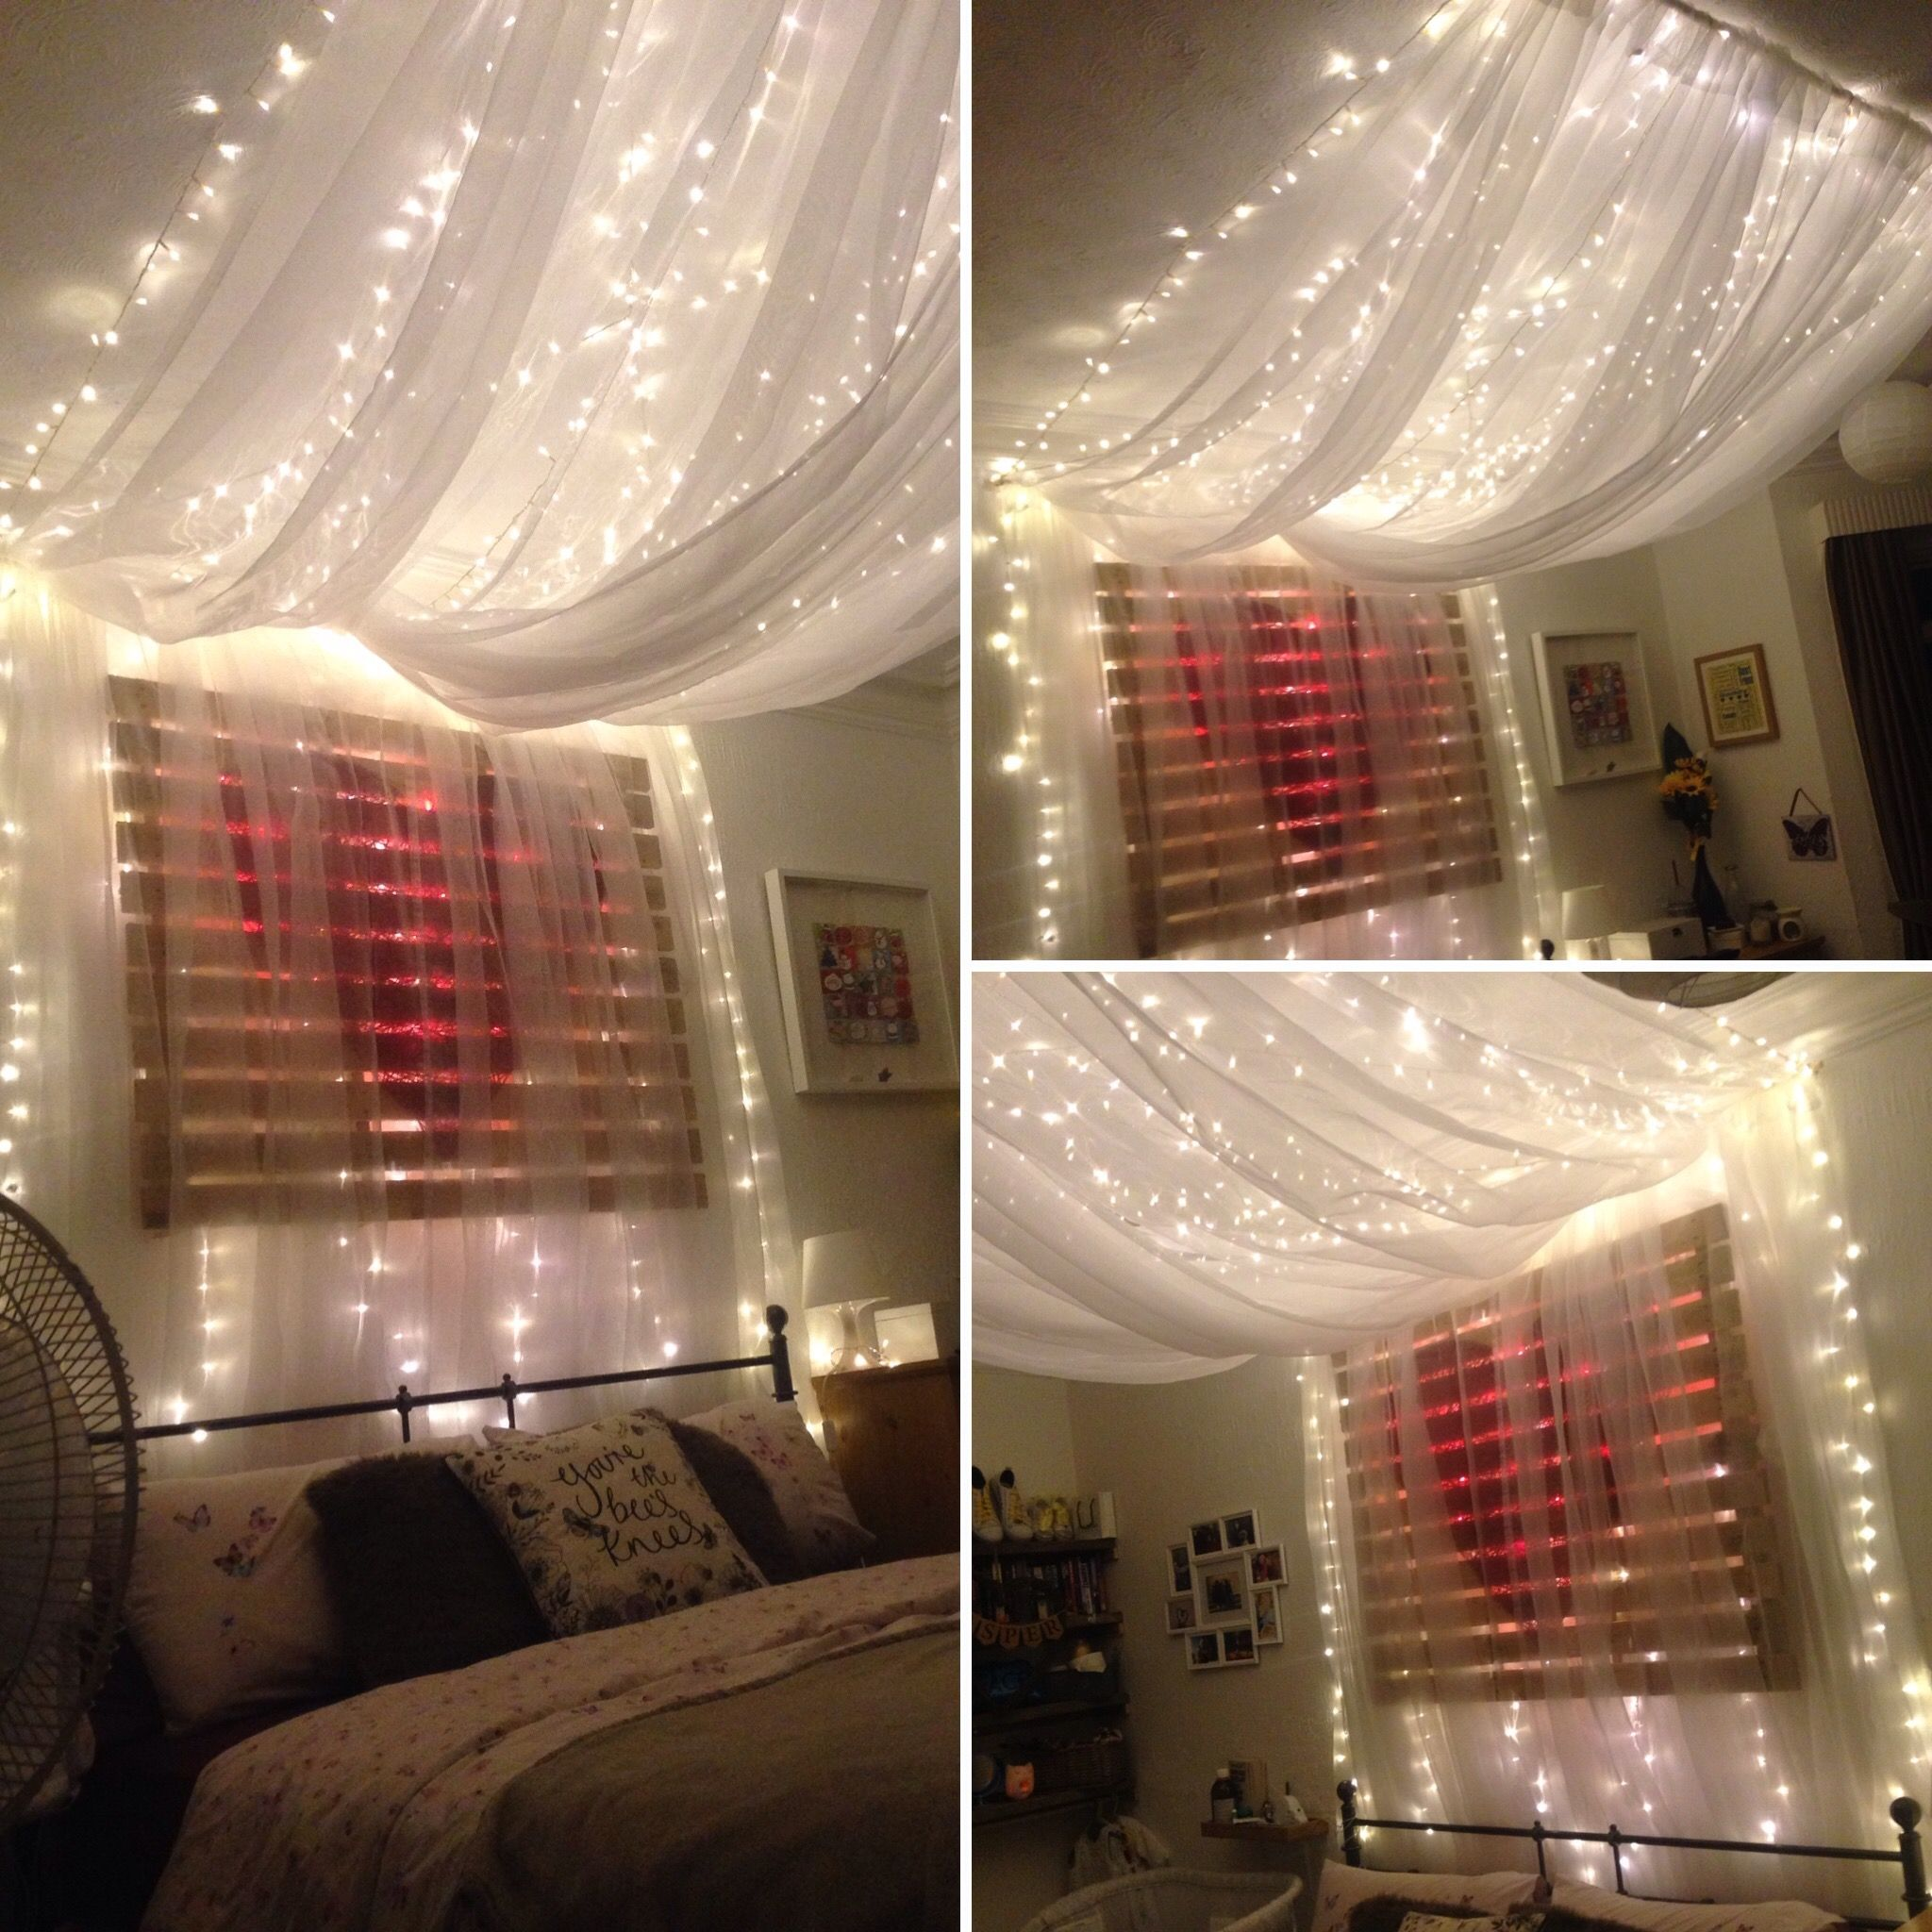 Fairy Light Bed Canopy Hung From Ceiling To Give Effect Of Four